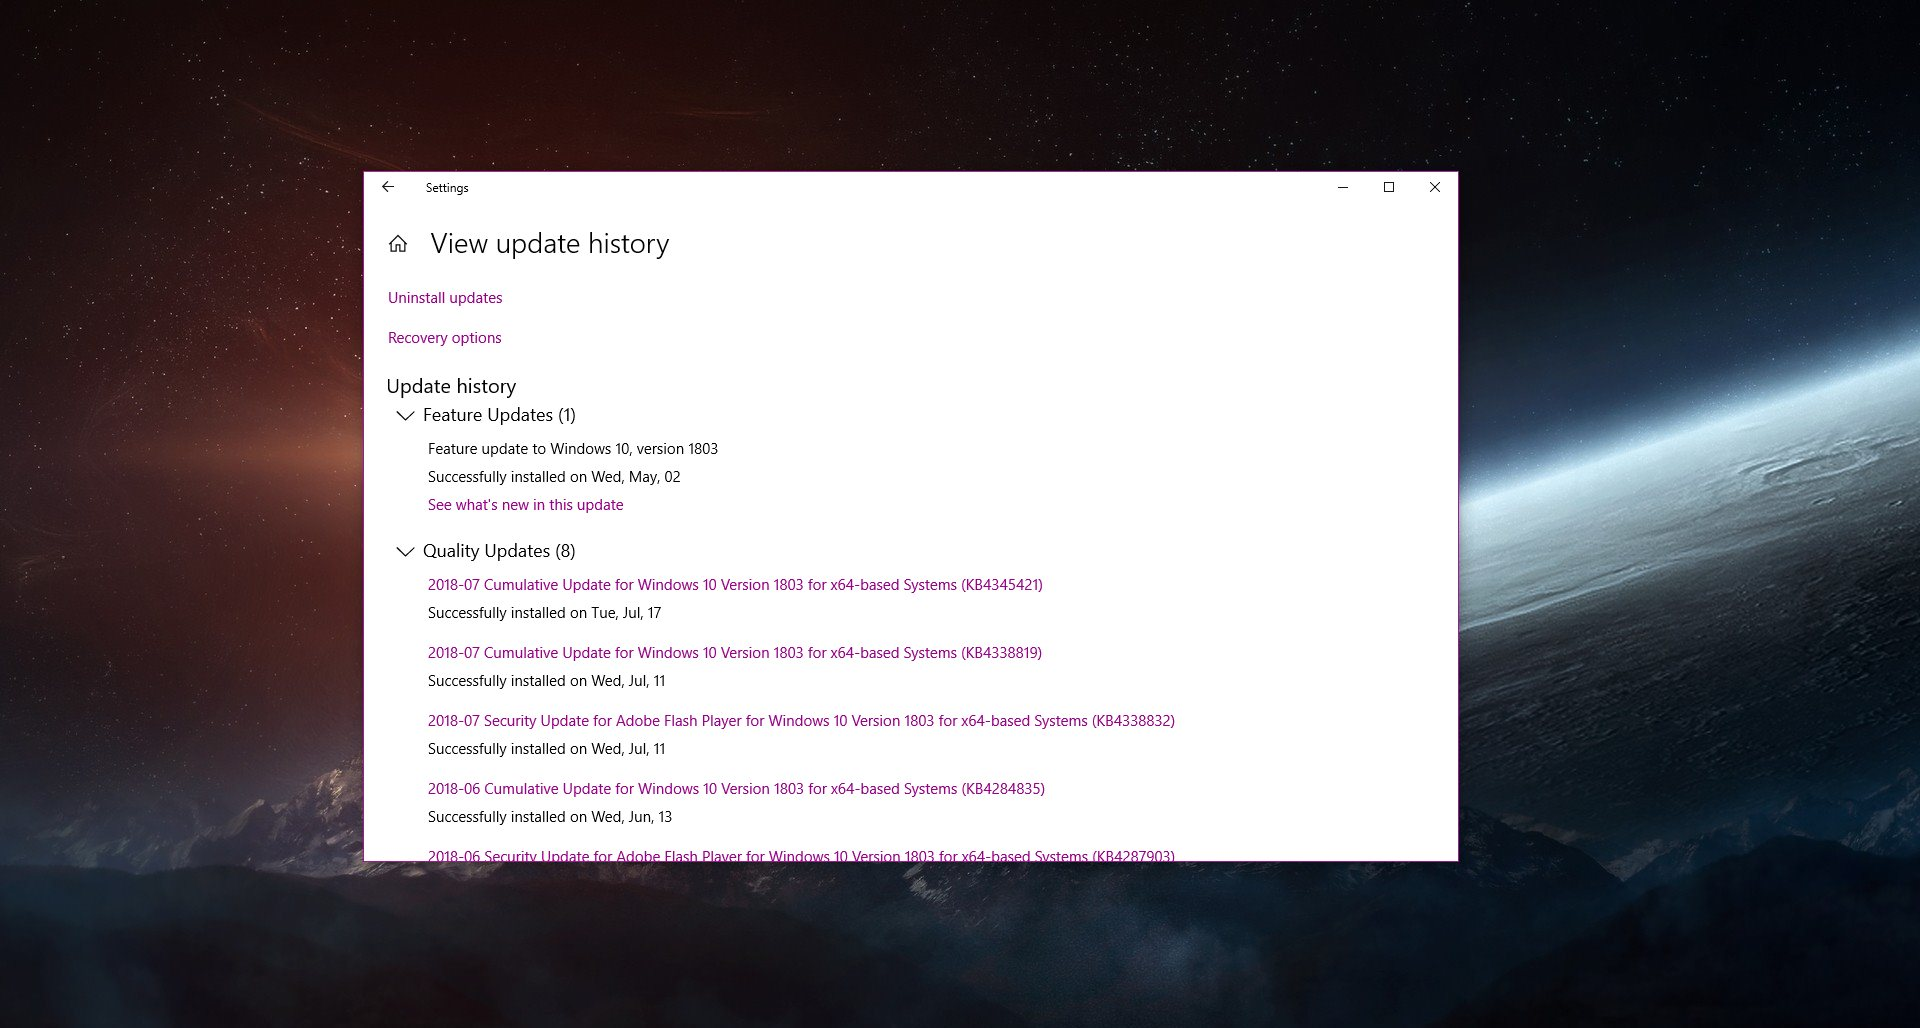 How to Clear the Windows Update History in Windows 10